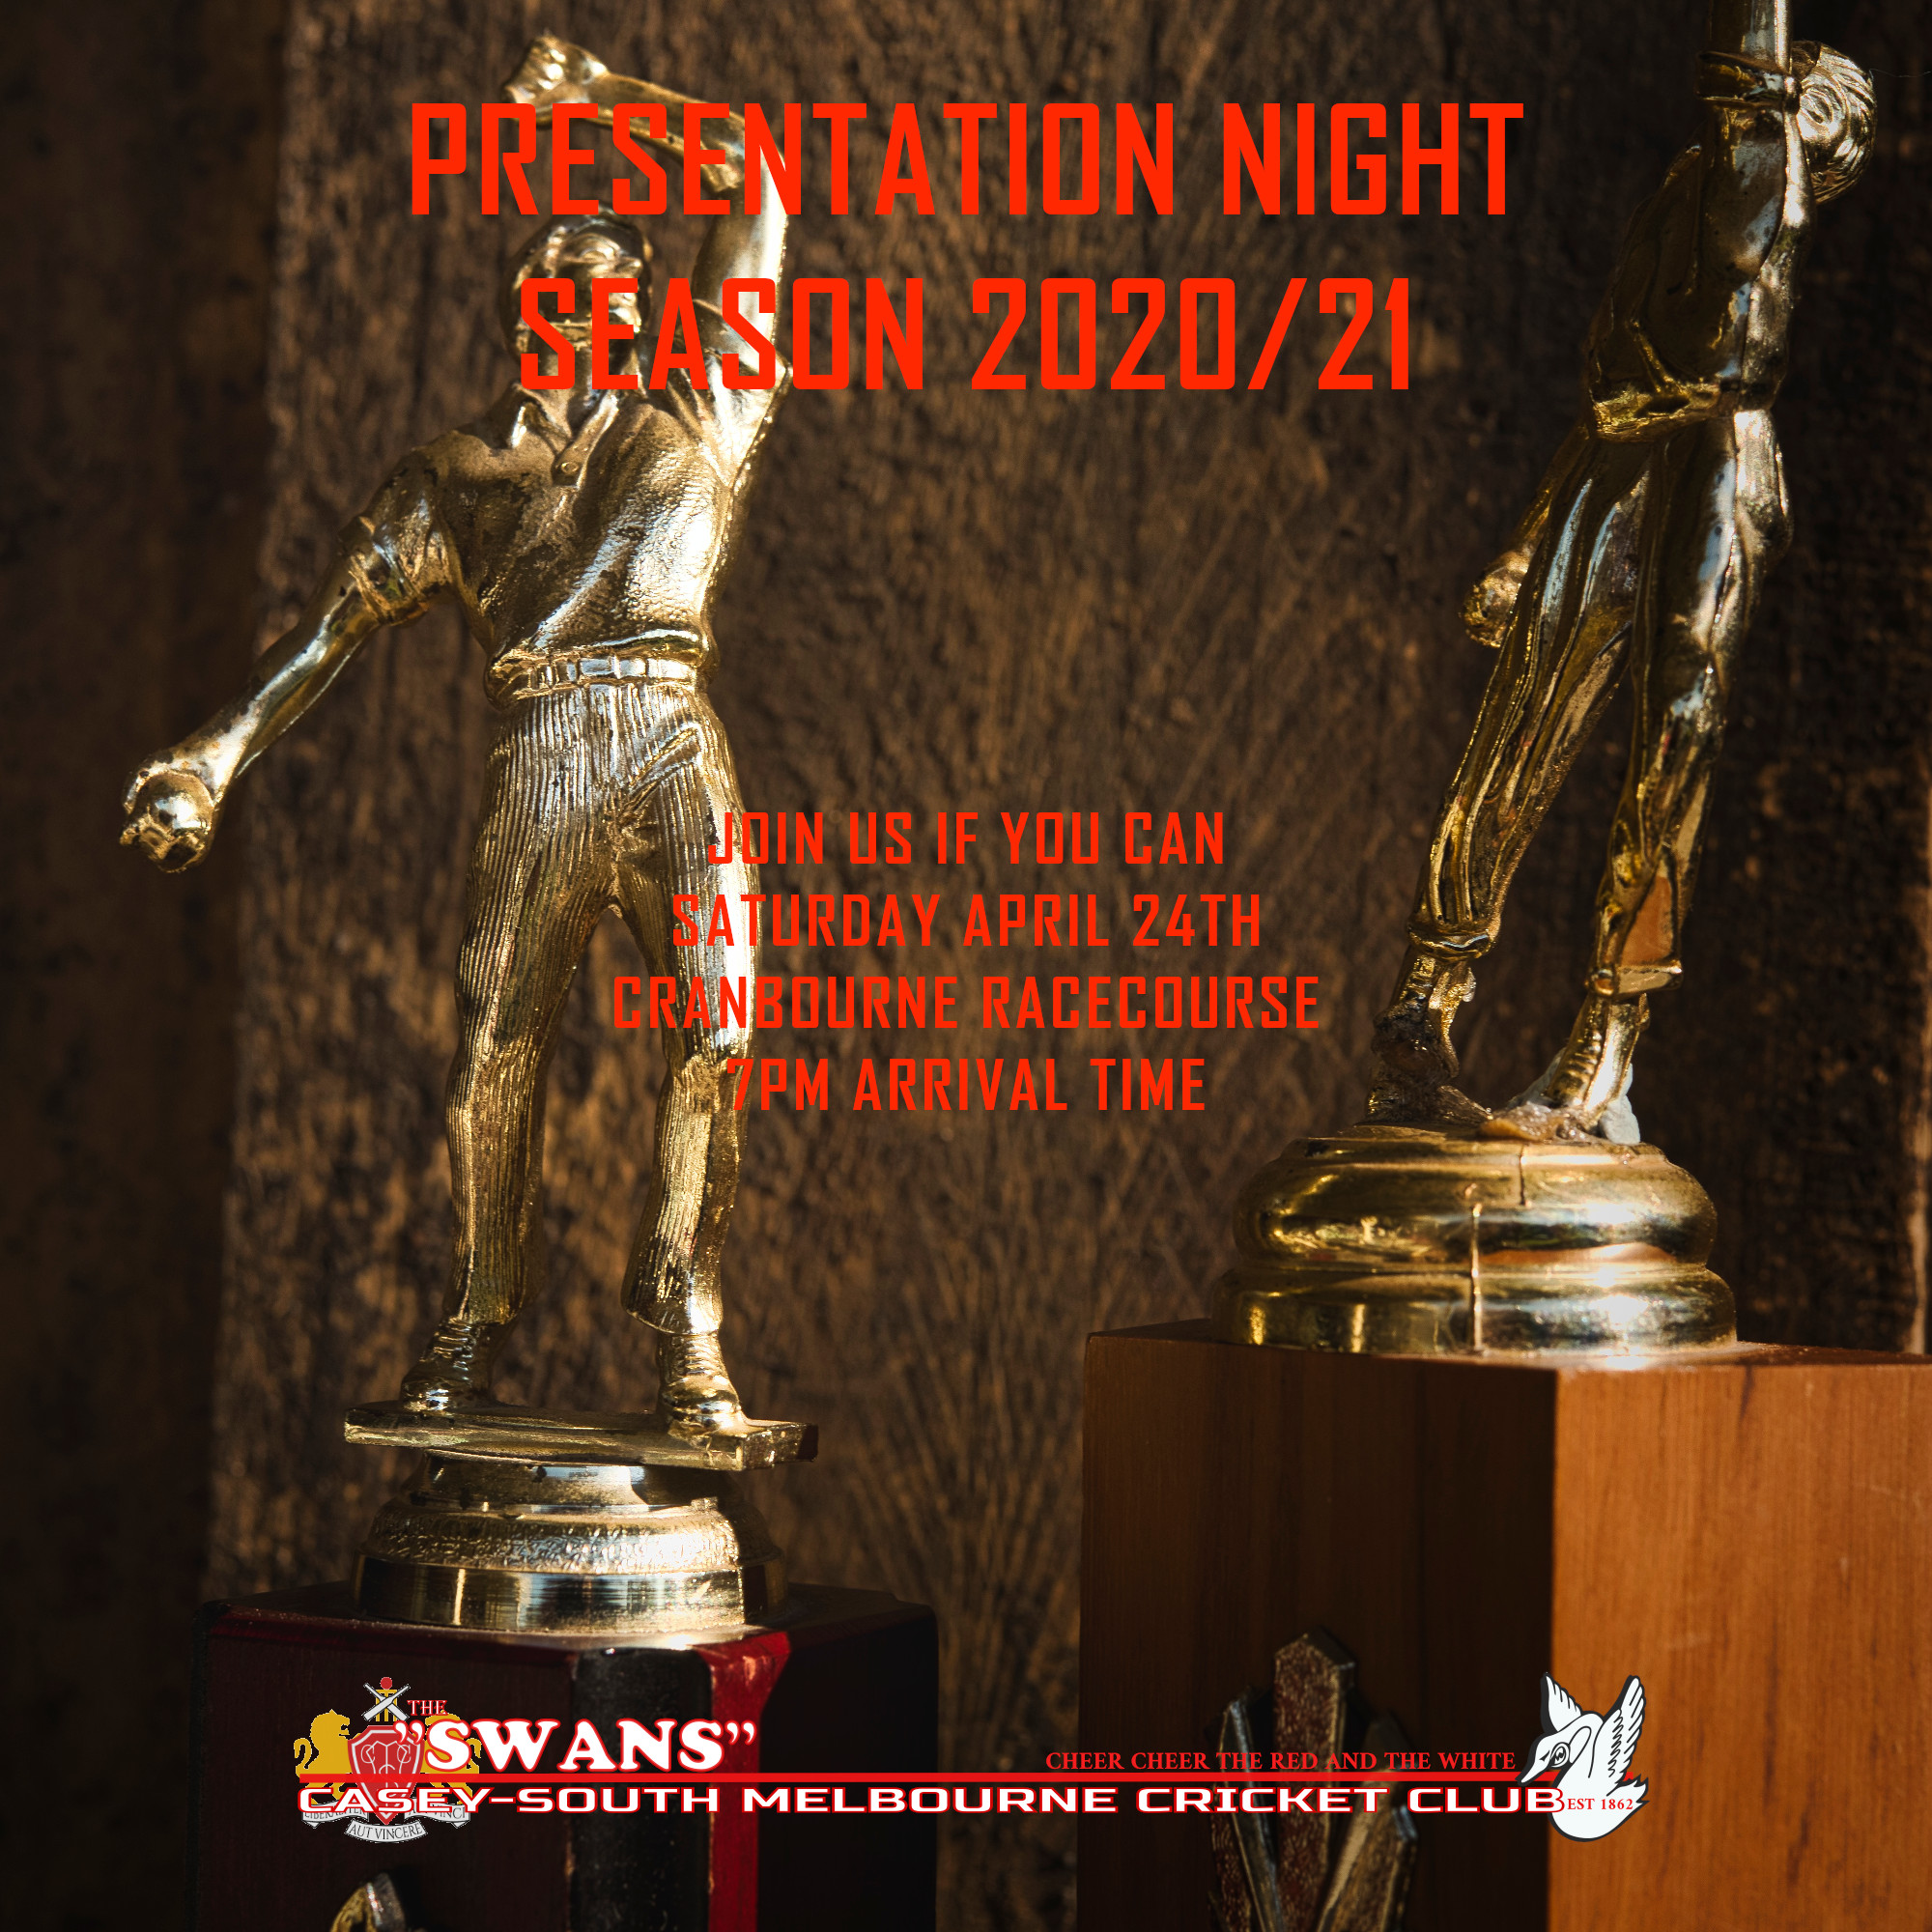 Presentation Night 20/21